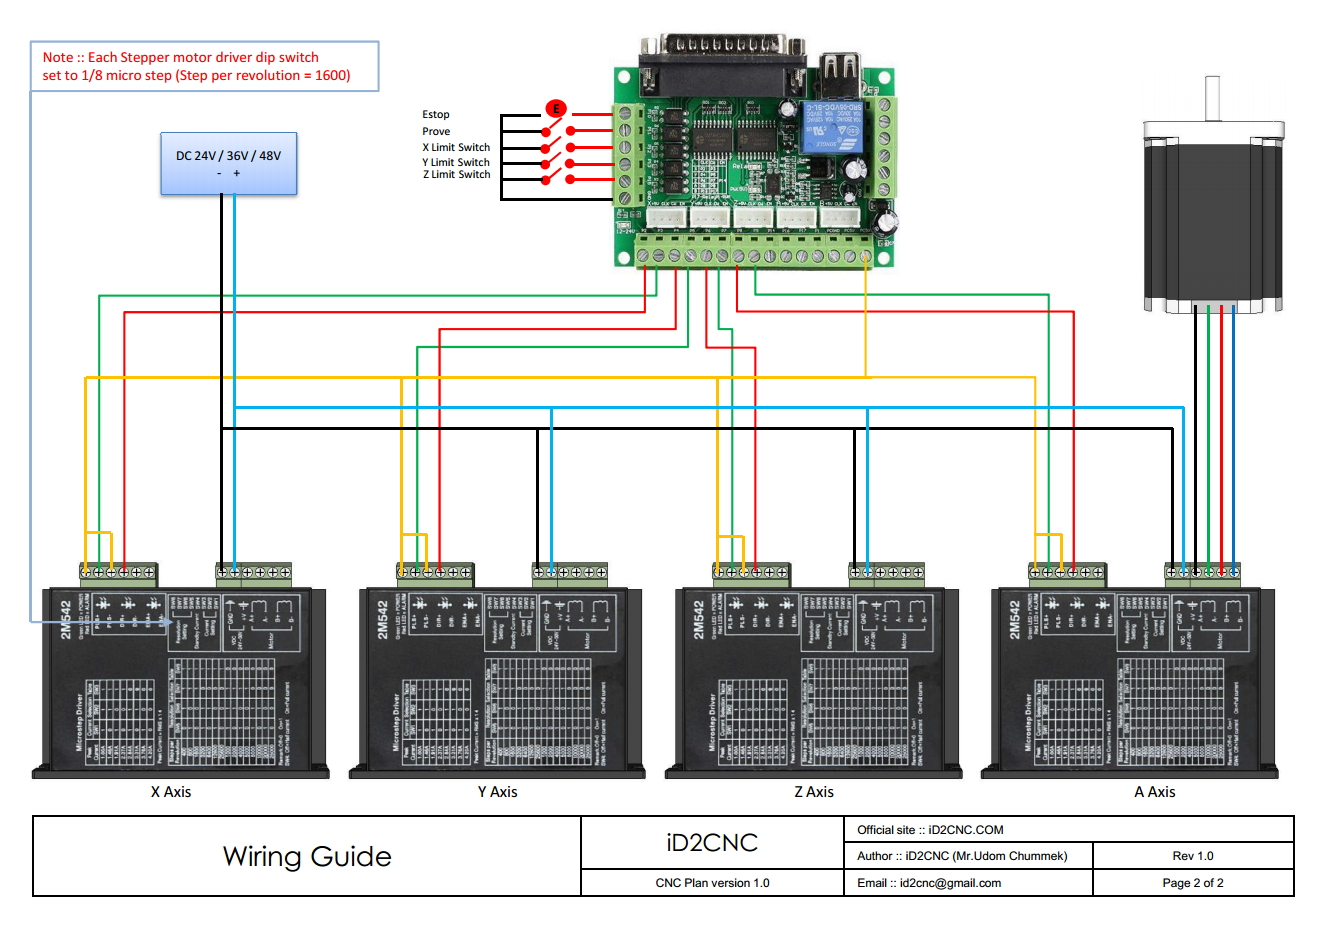 image 8?w=778 d i y cnc id2cnc cnc wiring diagram at webbmarketing.co